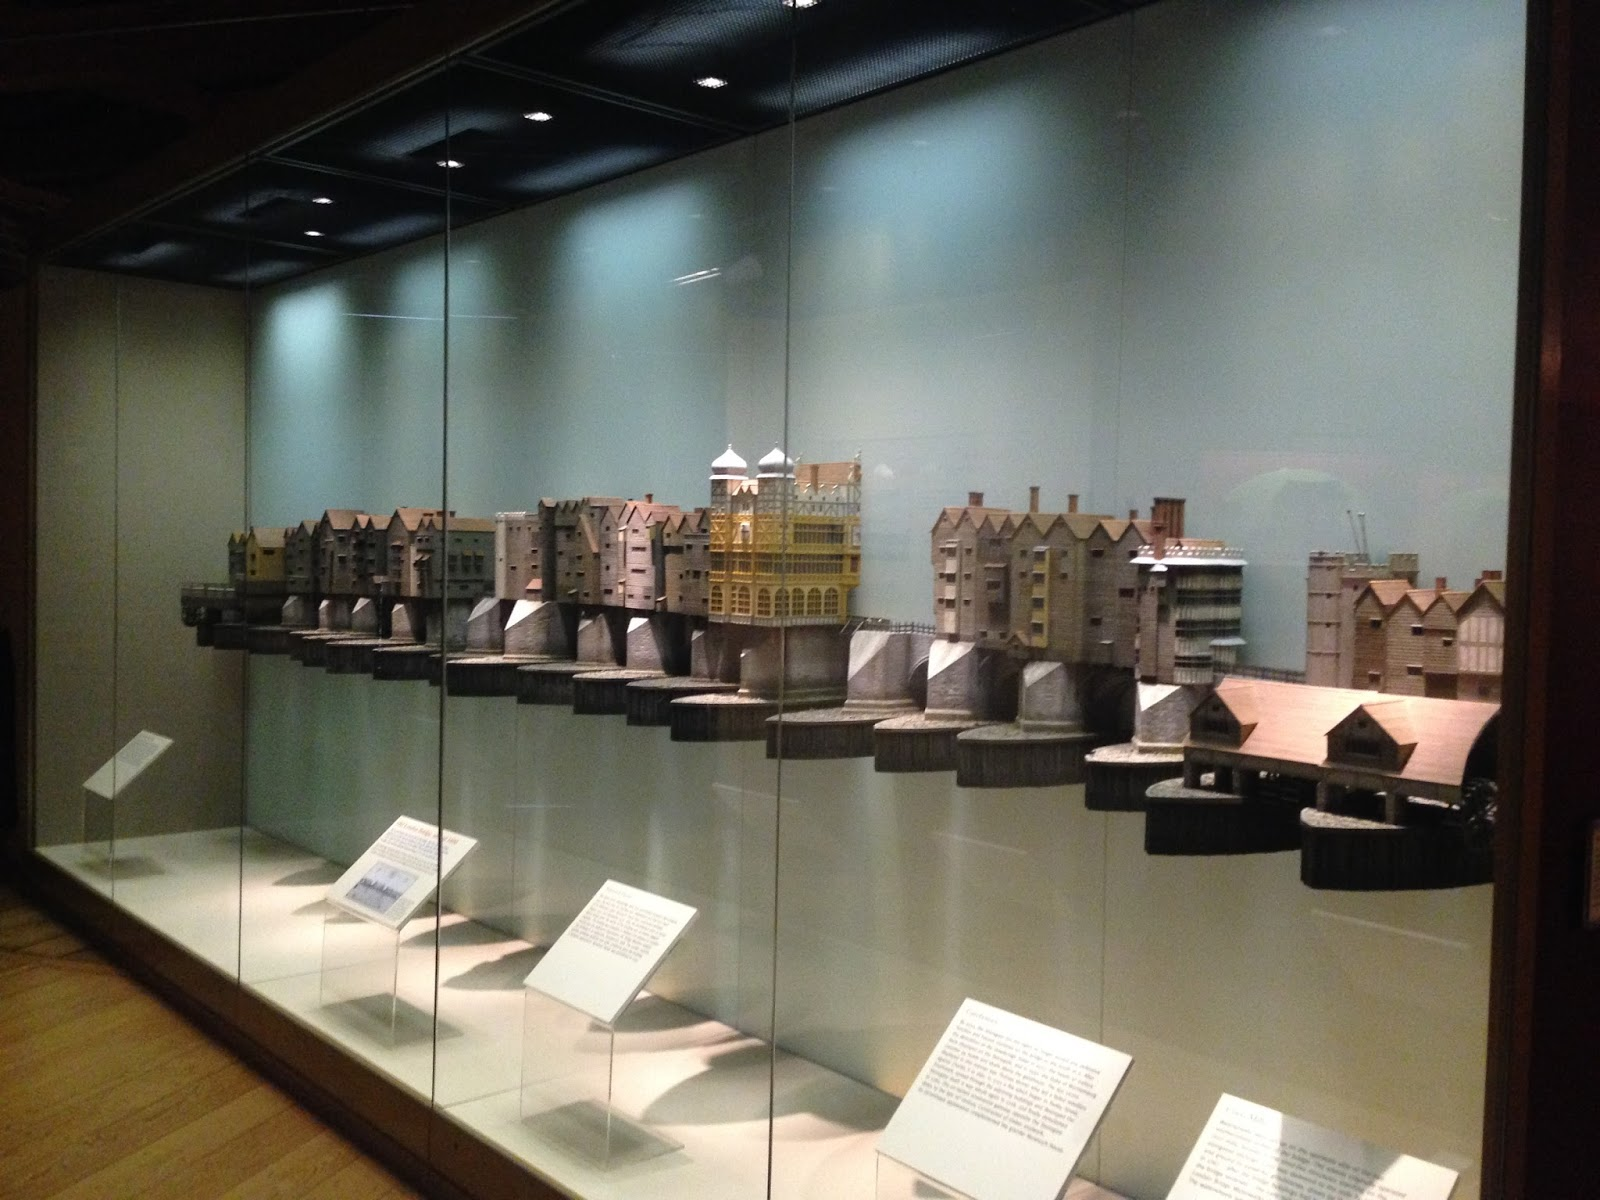 D Exhibition Docklands : The ministry of curiosity: #hipstermuseum museum of london docklands